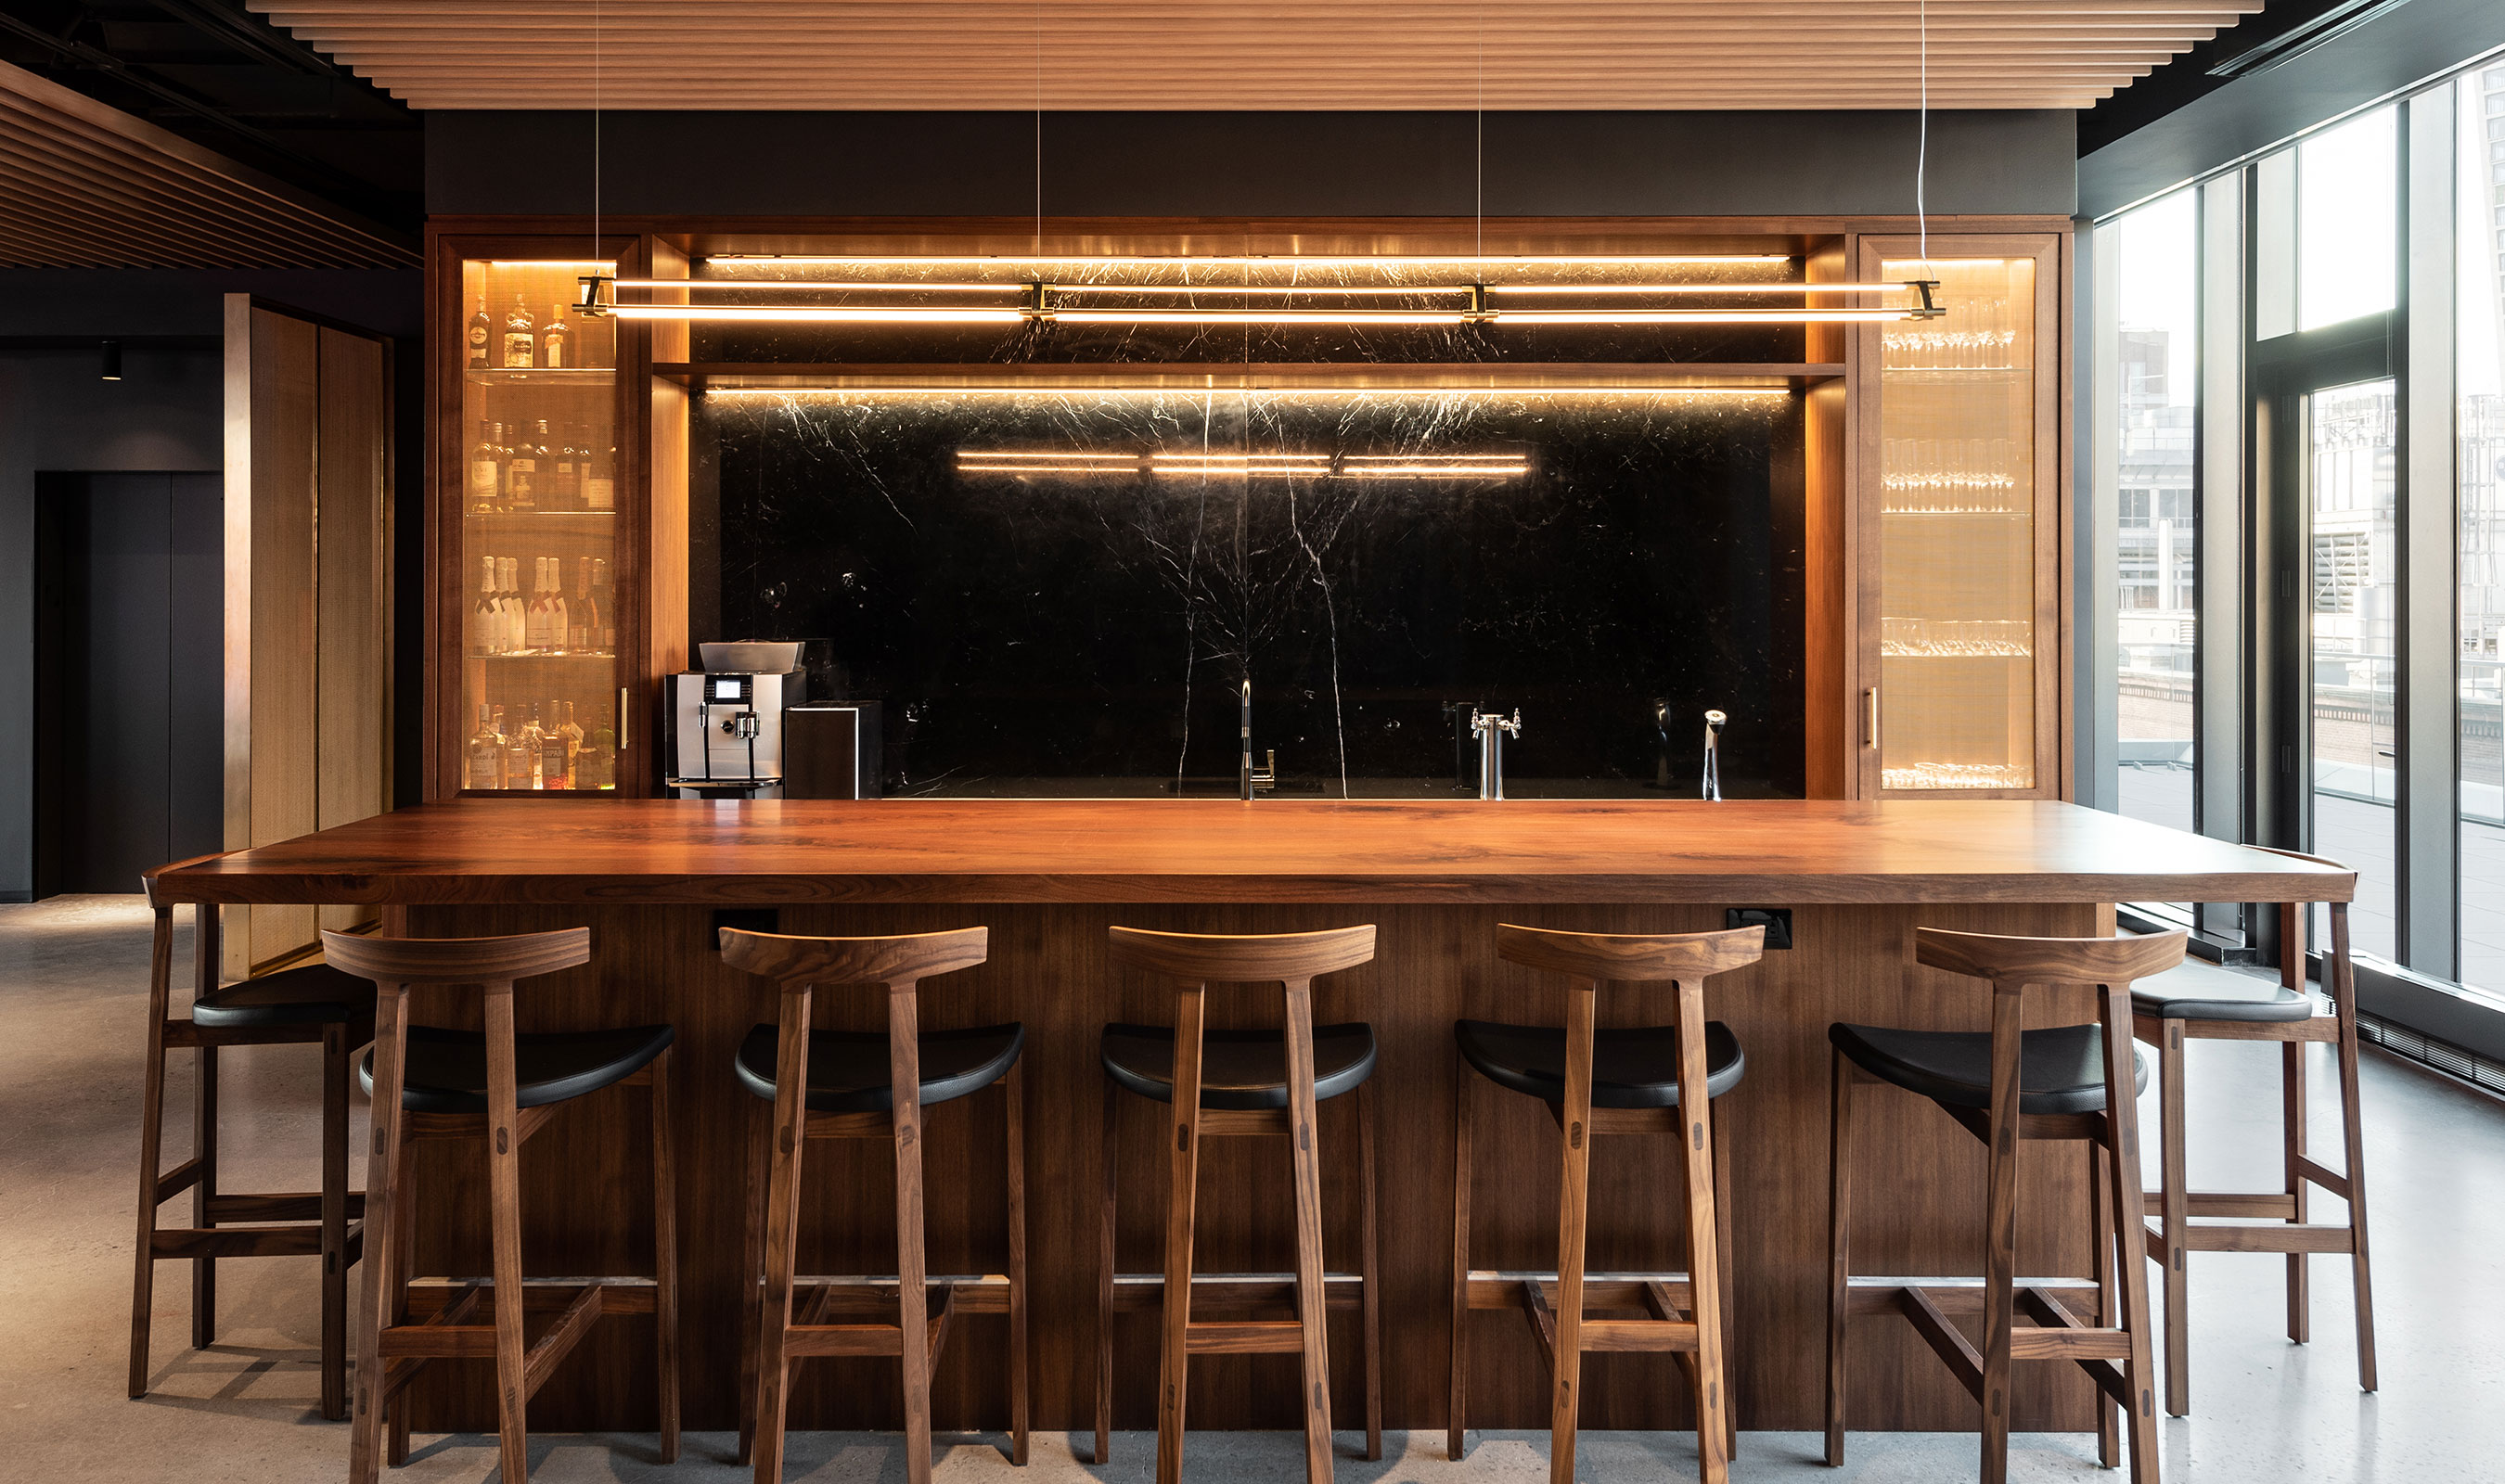 Banker Wire's S-51 in bronze is used in Project Worldwide's headquarters as bar cabinetry.